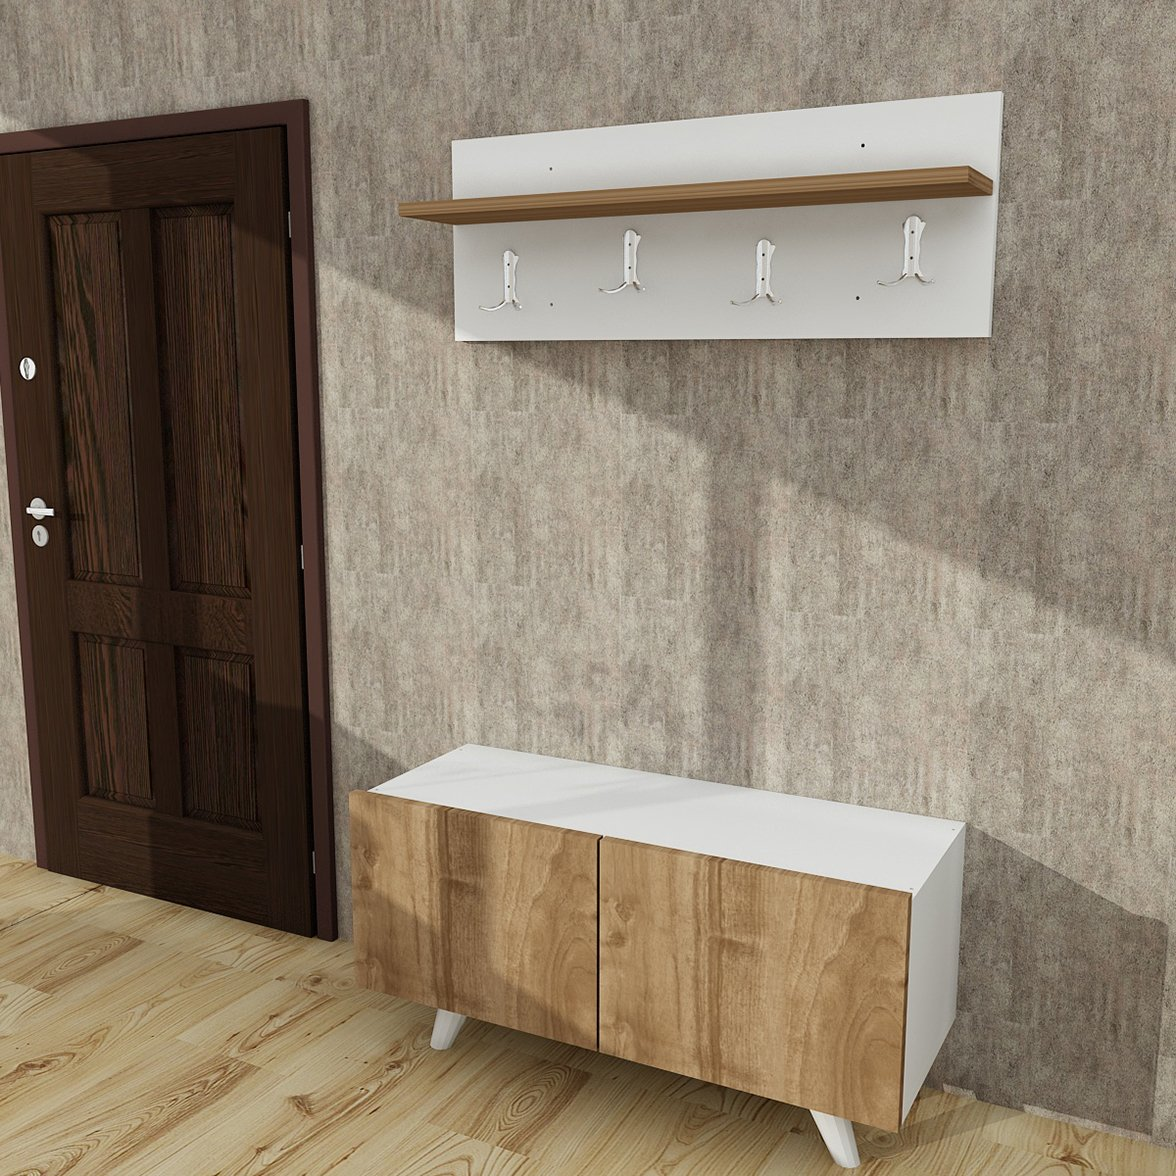 Hayes Modern Coat Rack & Side Table Set 31'' x 16'' x 12'' / Storage Cabinet / Accent Table